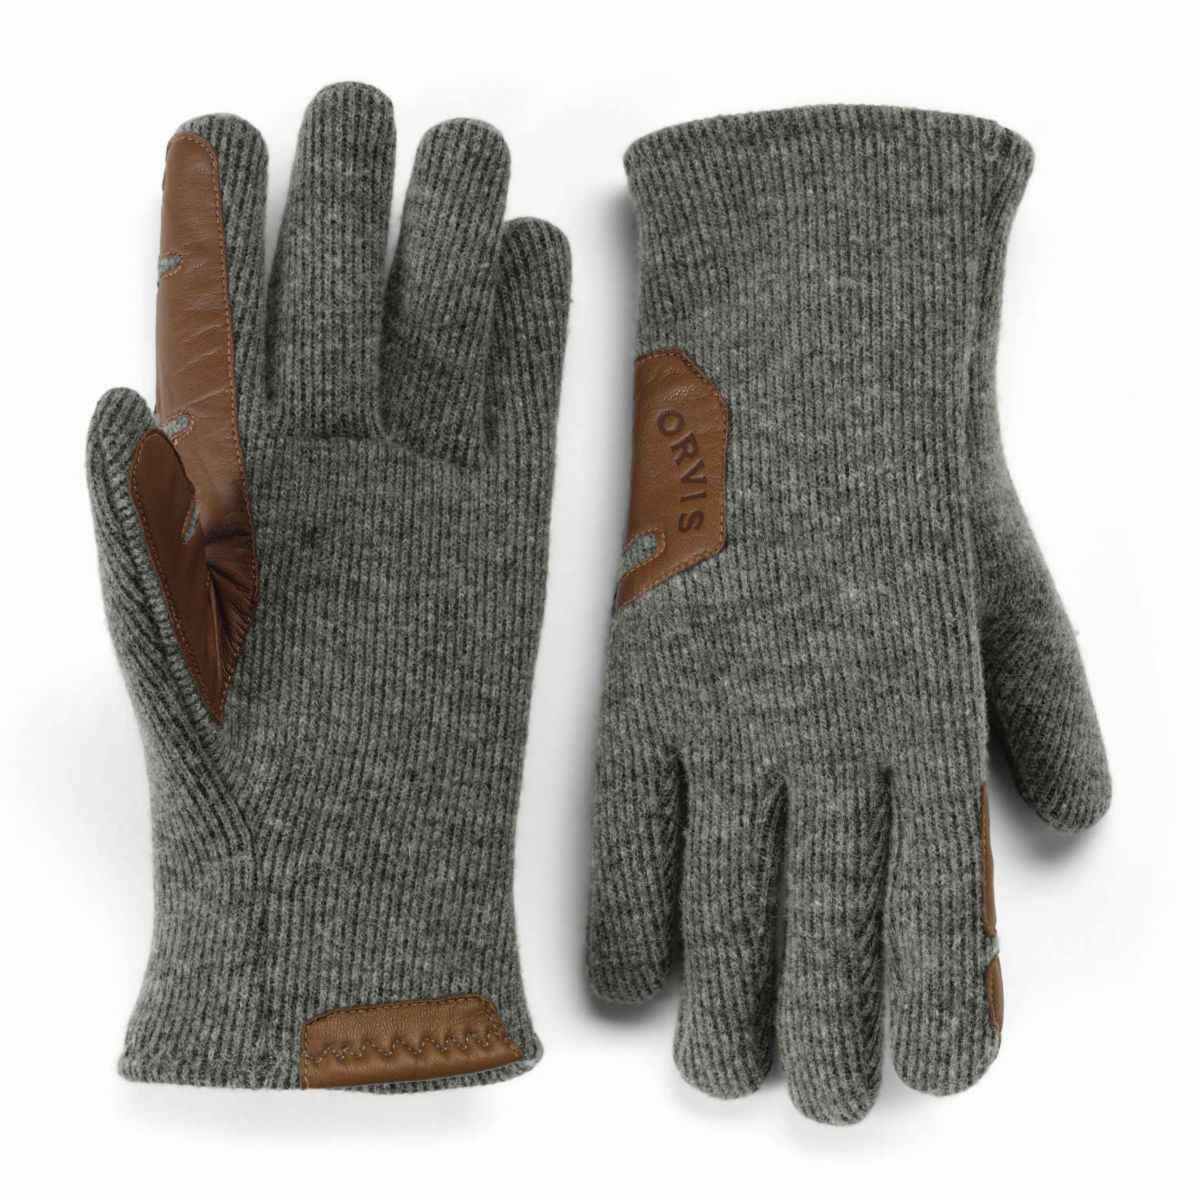 Indicator Gloves - image number 0